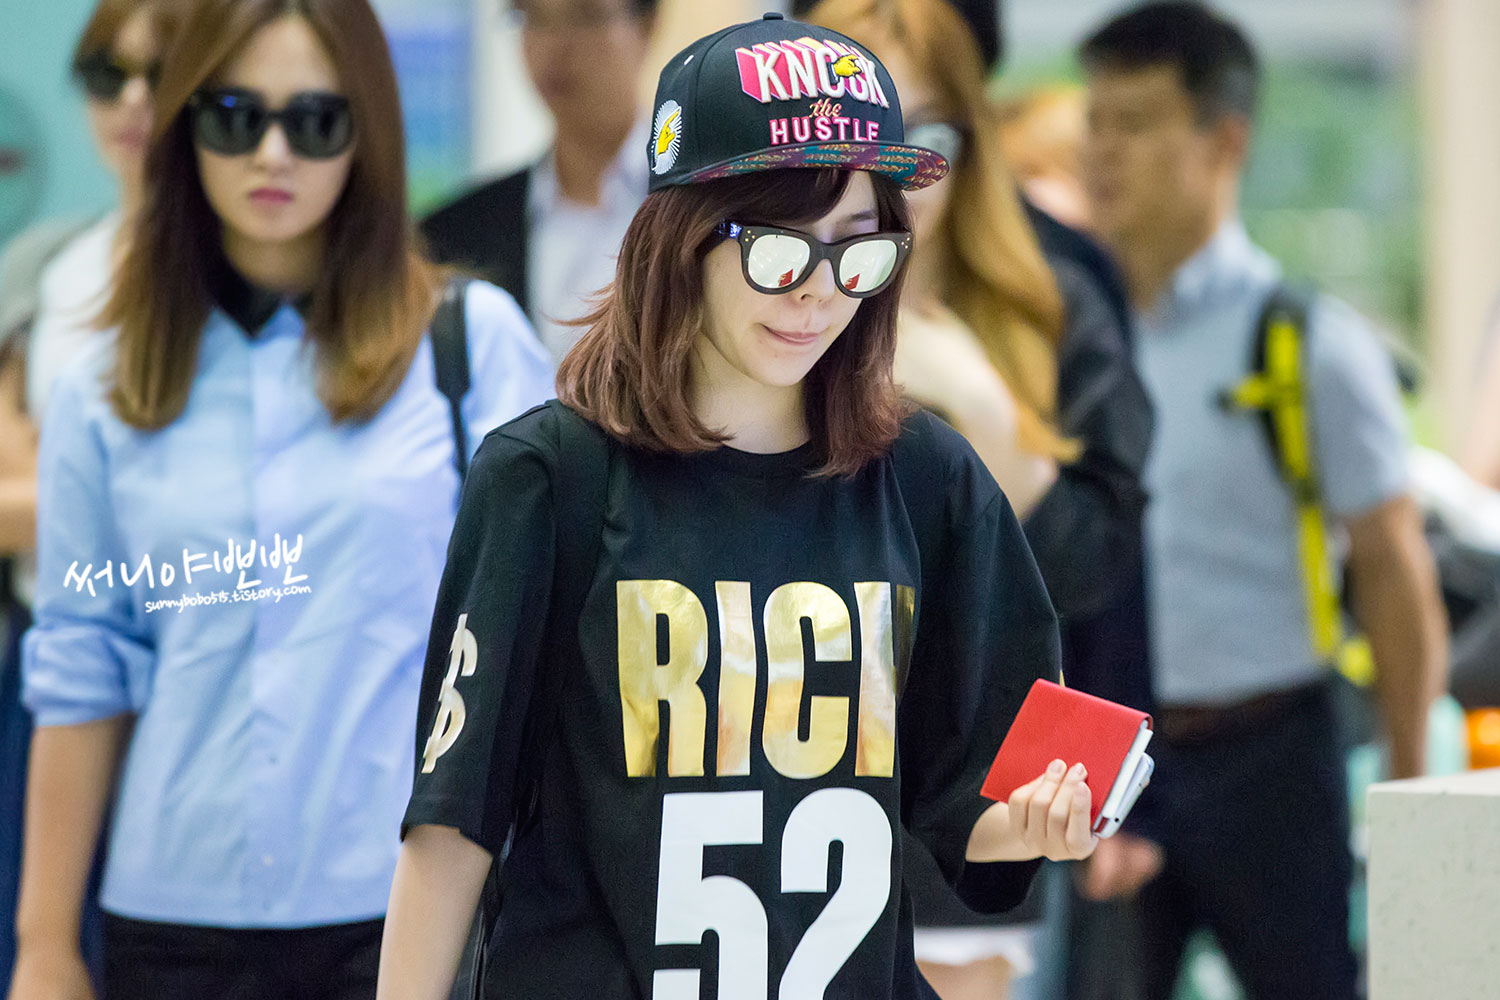 Sunny Incheon Airport to/from Hong Kong